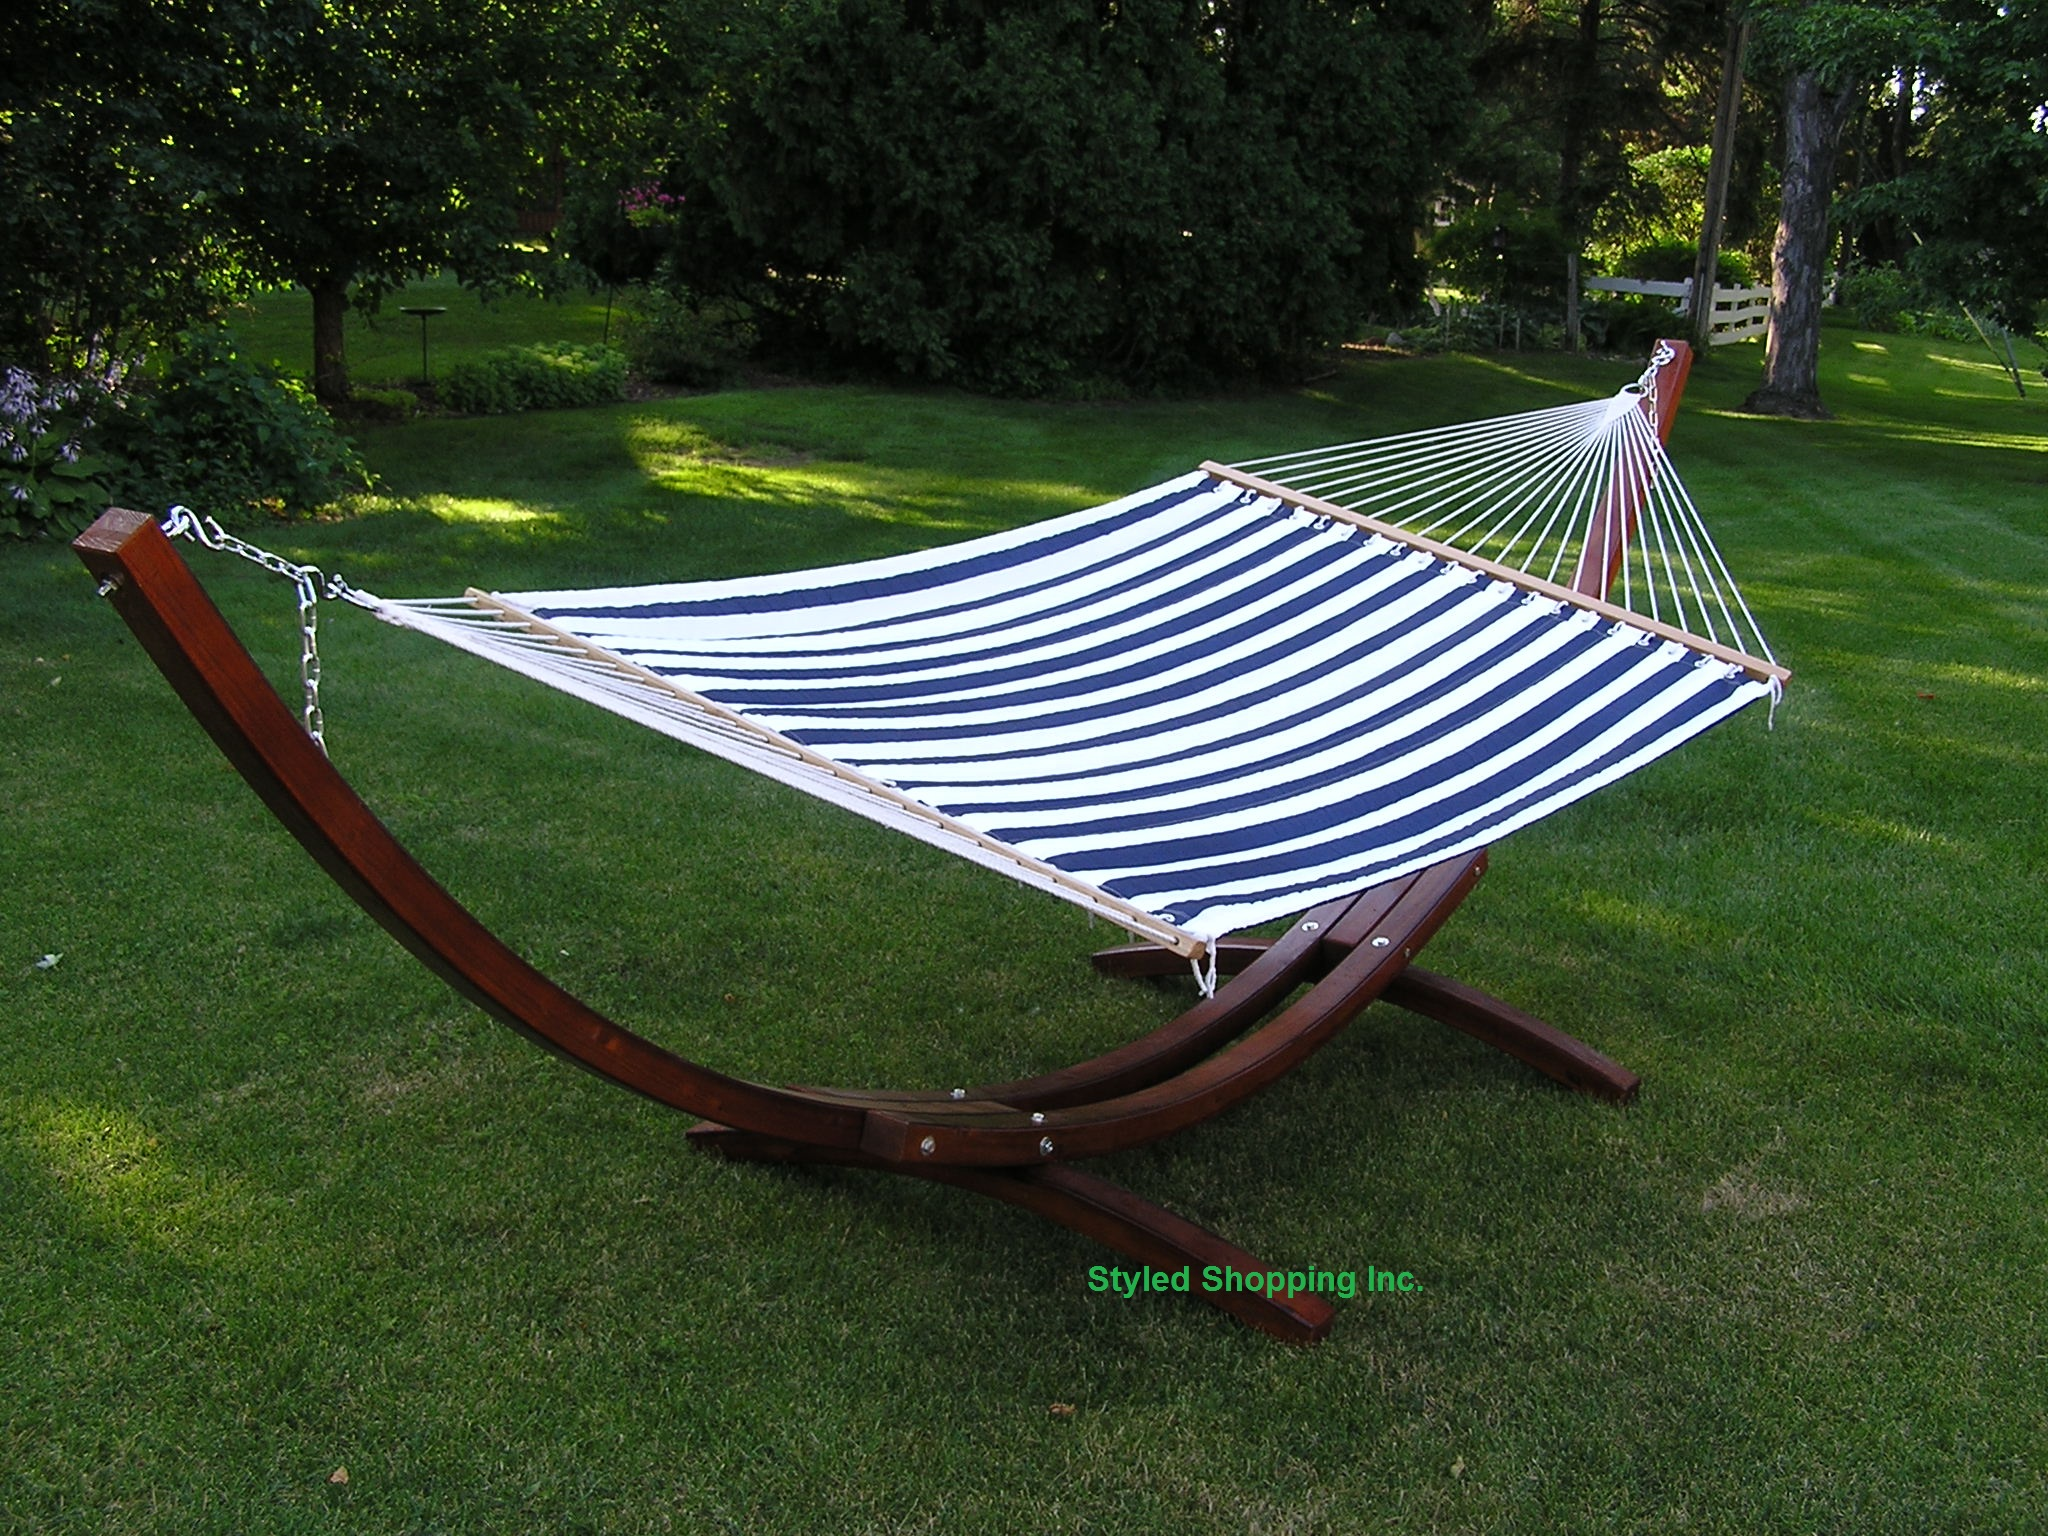 Very Impressive portraiture of Deluxe Wood Arc Two Person Adult Wood Hammock Stand   Quilted Hammock  with #2F4180 color and 2048x1536 pixels